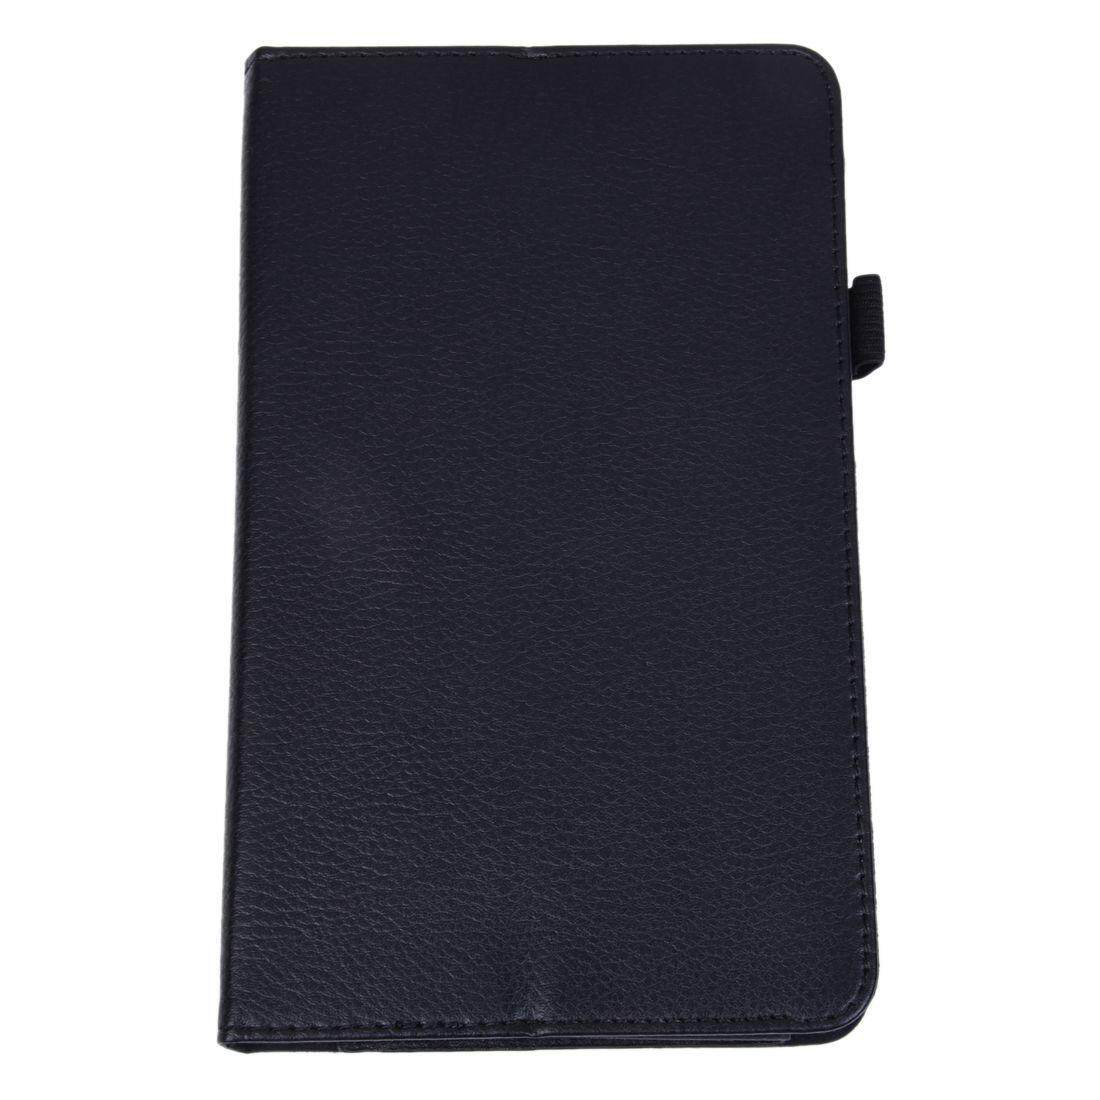 Cek Harga Leather Holder Cover Case For Acer Iconia One 7 B1 730 Tablet 723 Talk Black Pu Folding Inch 770